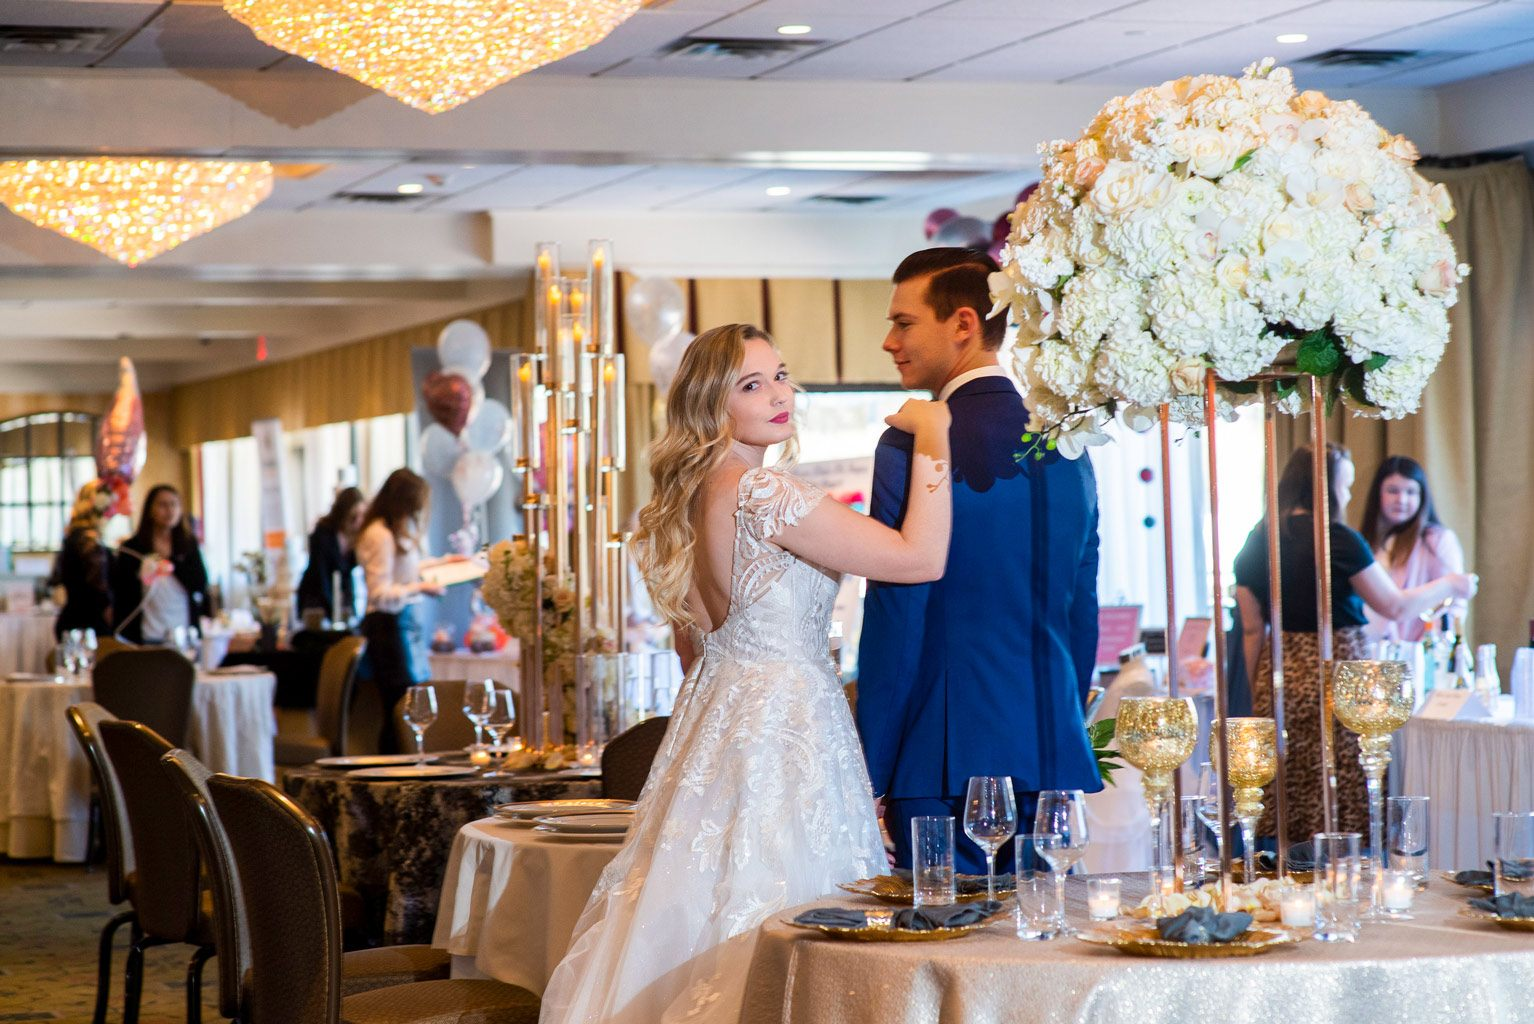 The Main Line Bridal Event at The Radnor Hotel 2020